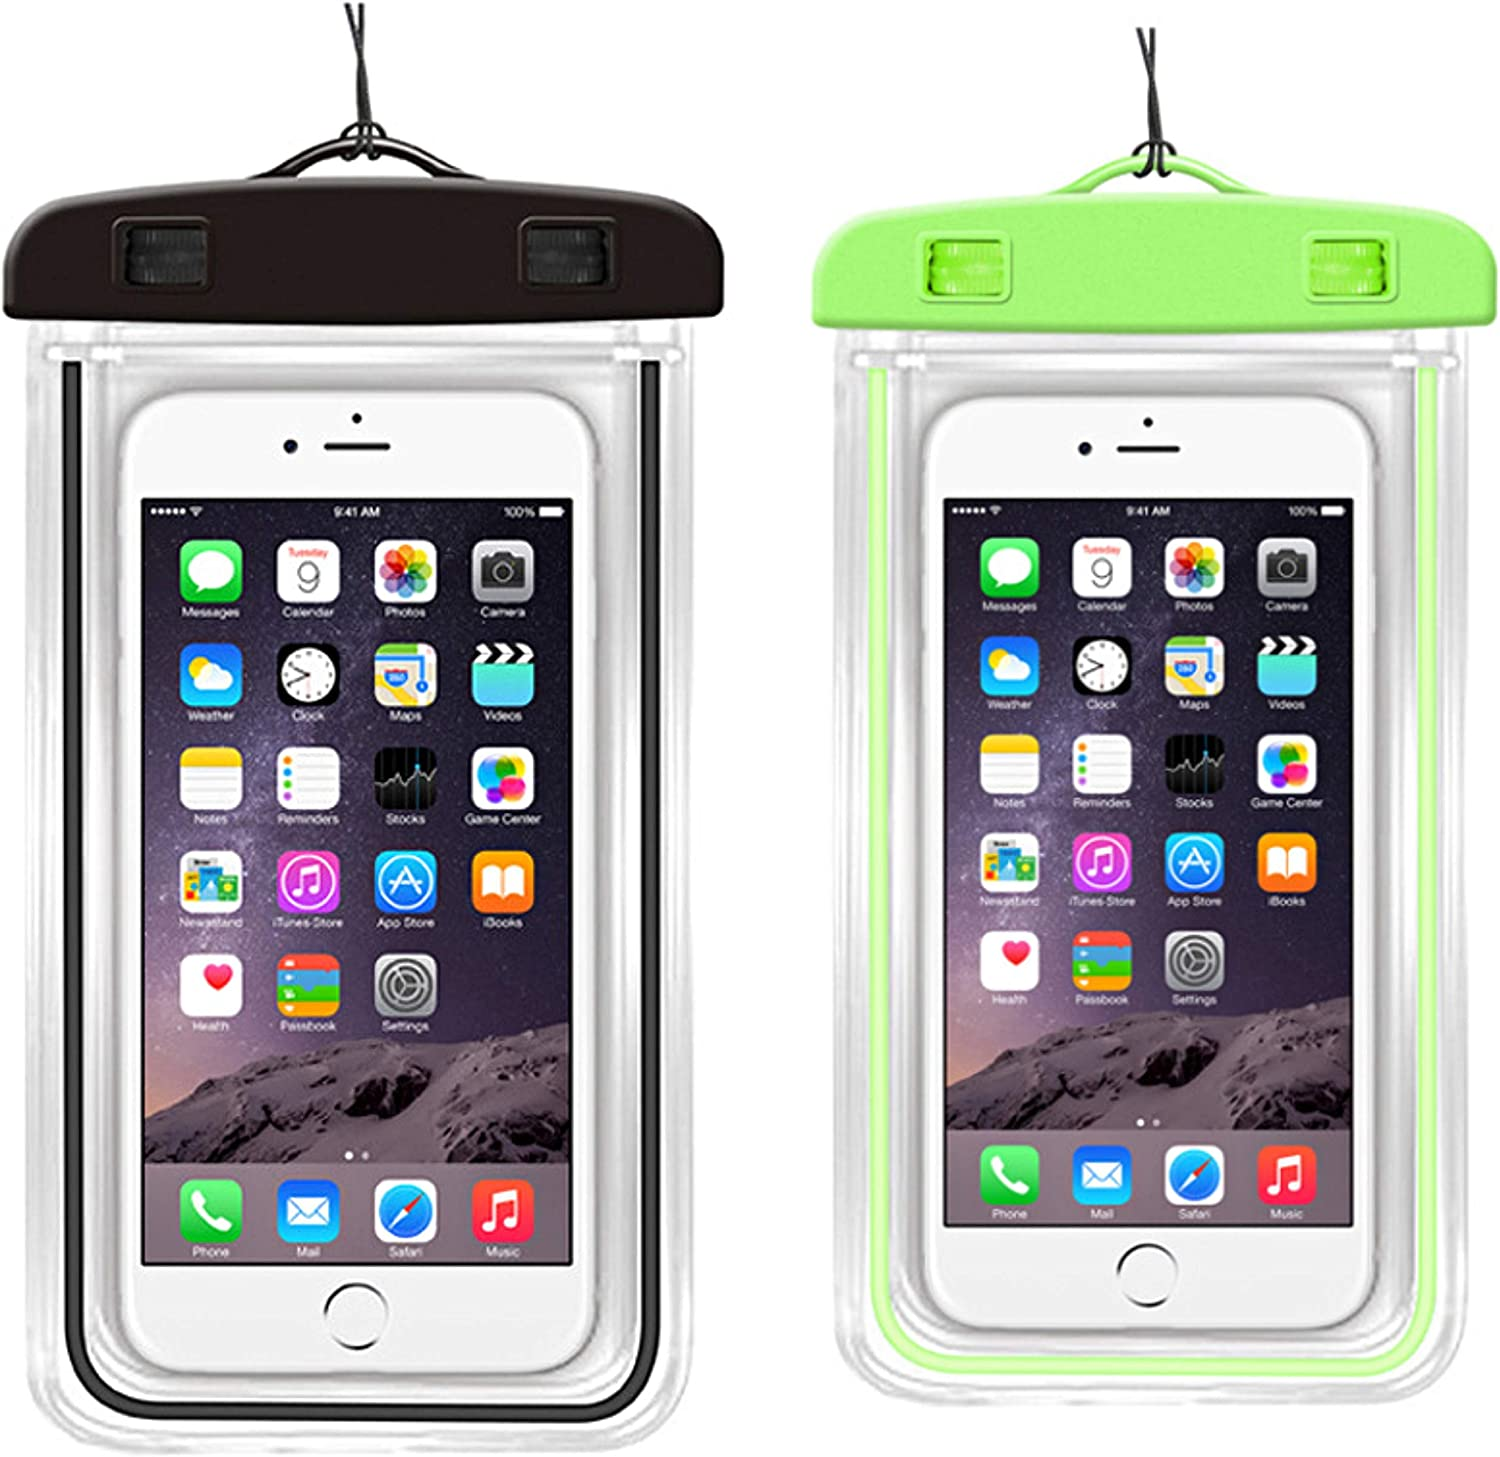 [2-Pack] Universal Waterproof Phone Case,IPX8 Waterproof Dry Bag Underwater Case with Lanyard Compatible for iPhone 12 Pro Max/11/Xs Max/XR/X/8 Plus Galaxy Pixel up to 7